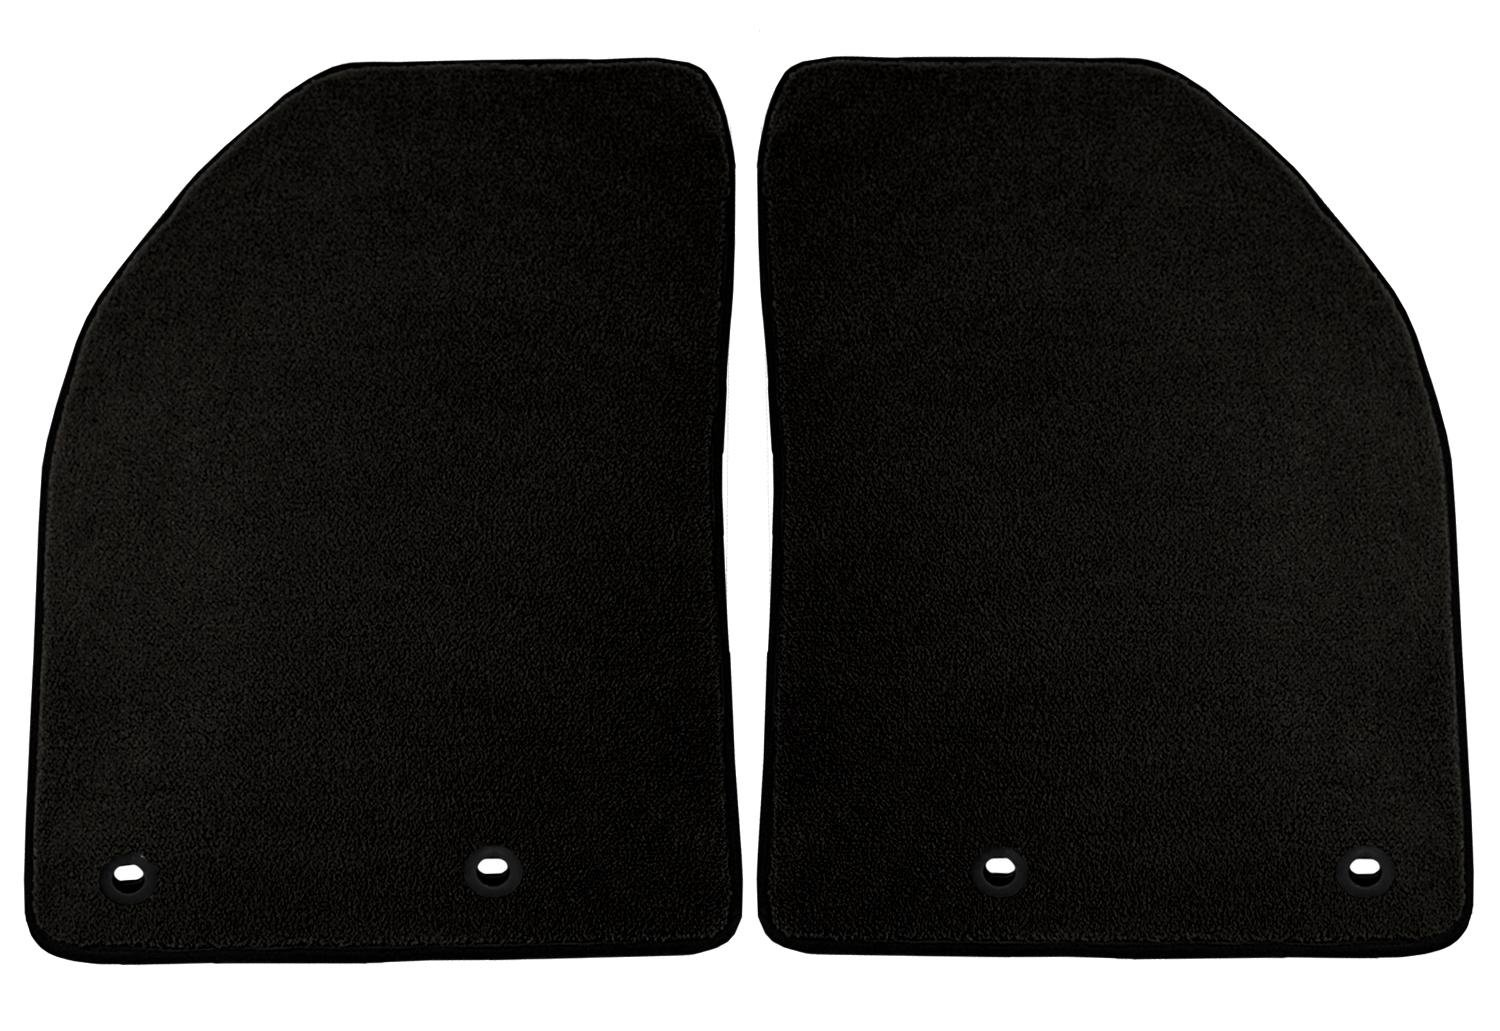 Black Coverking Custom Fit Front and Rear Floor Mats for Select Cadillac CTS Models Nylon Carpet CFMBX1CD7276